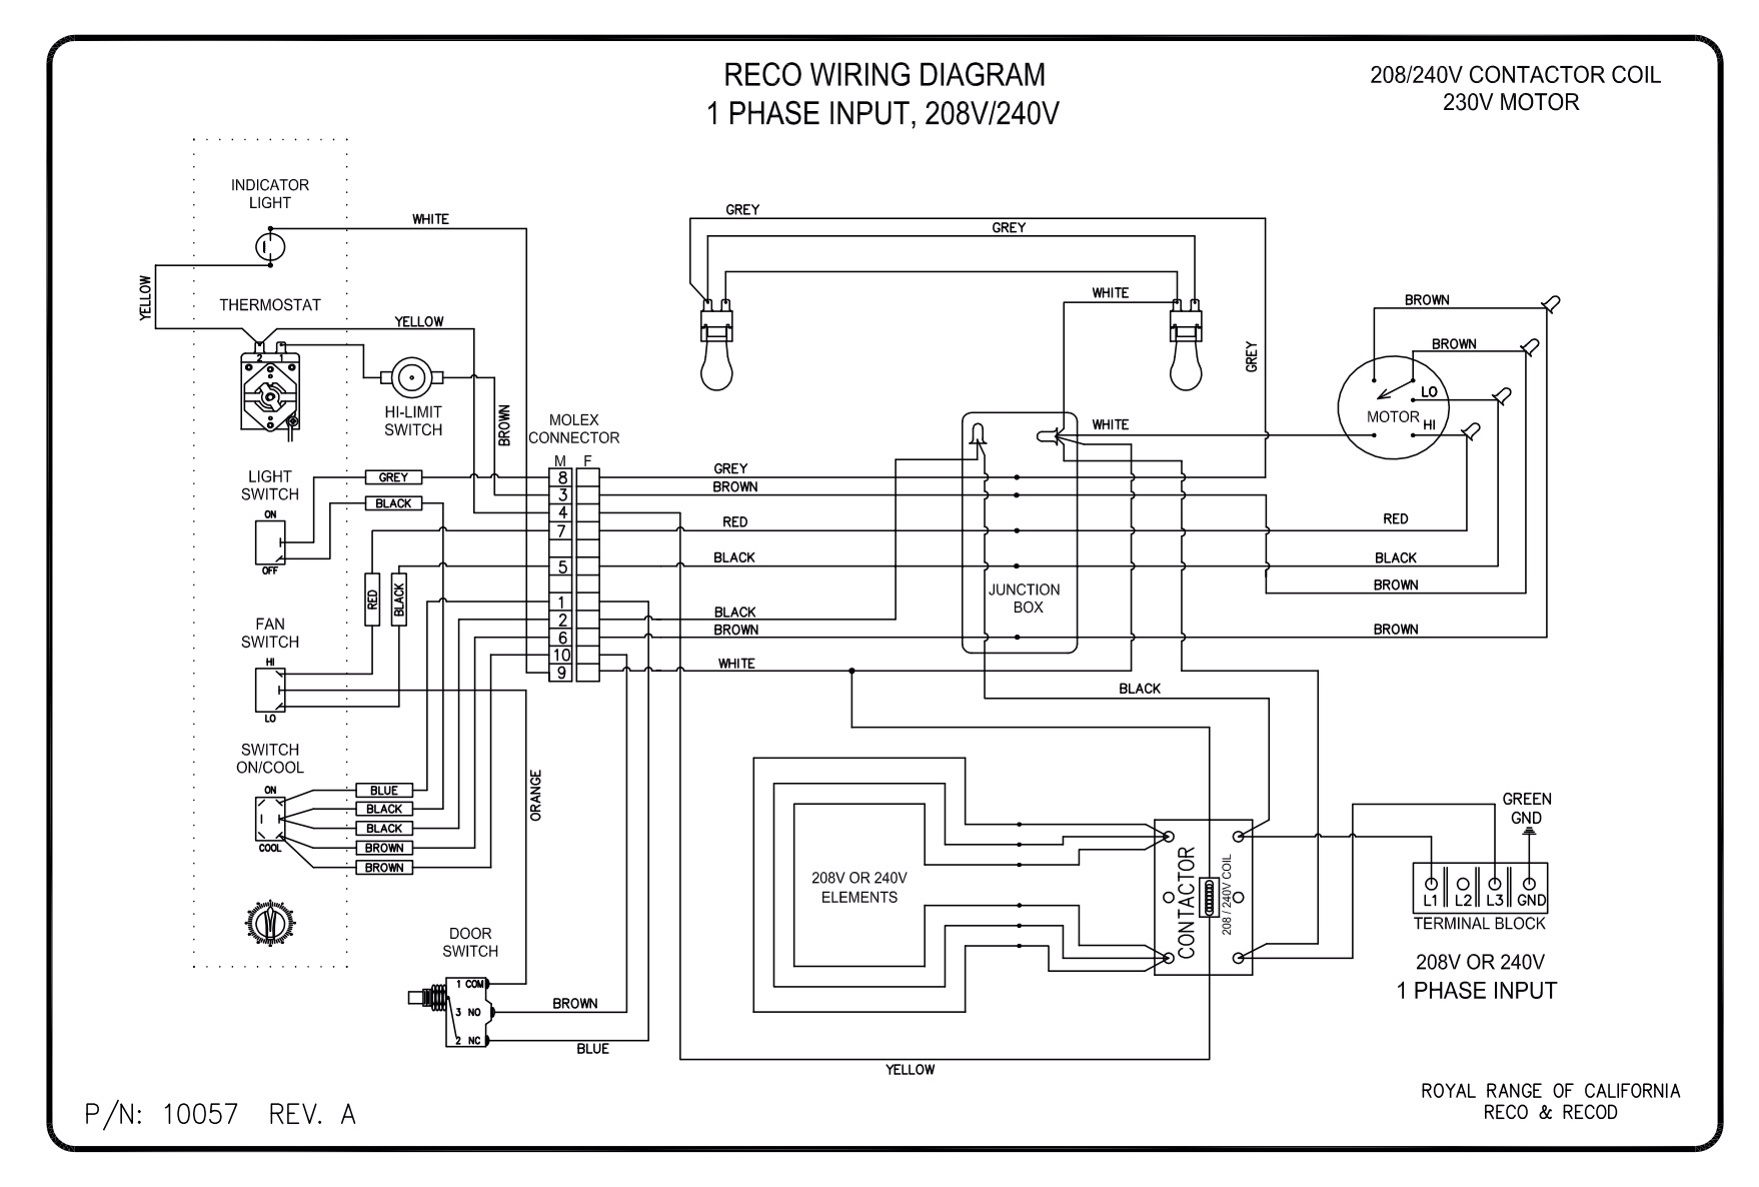 wiring diagrams royal range of california Stereo Wire Diagram  whirlpool oven wiring diagram Alarm Clock Wire Diagram KitchenAid Oven Parts Diagram